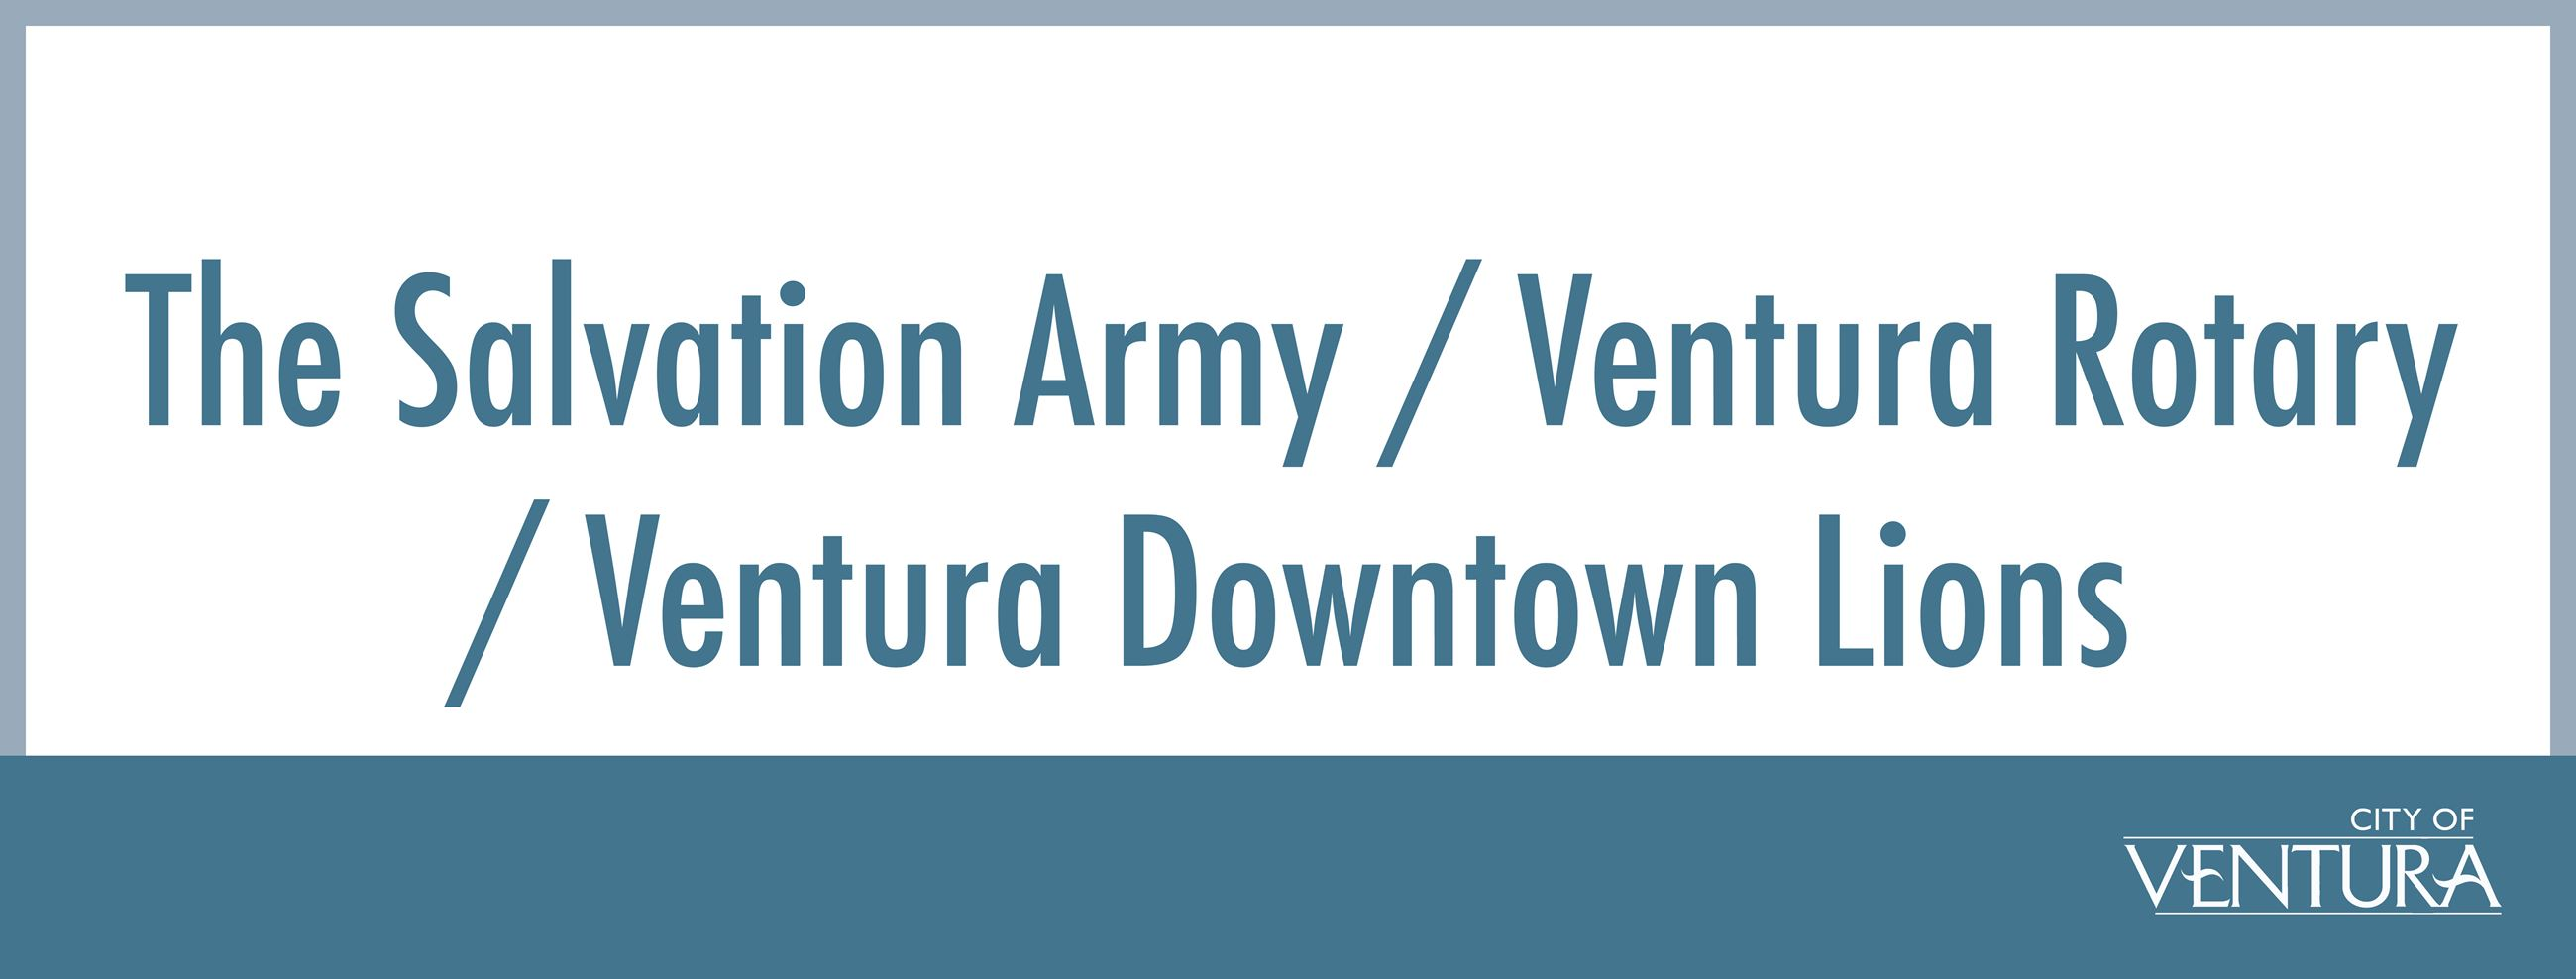 The Salvation Army, Ventura Rotary, Ventura Downtown Lions